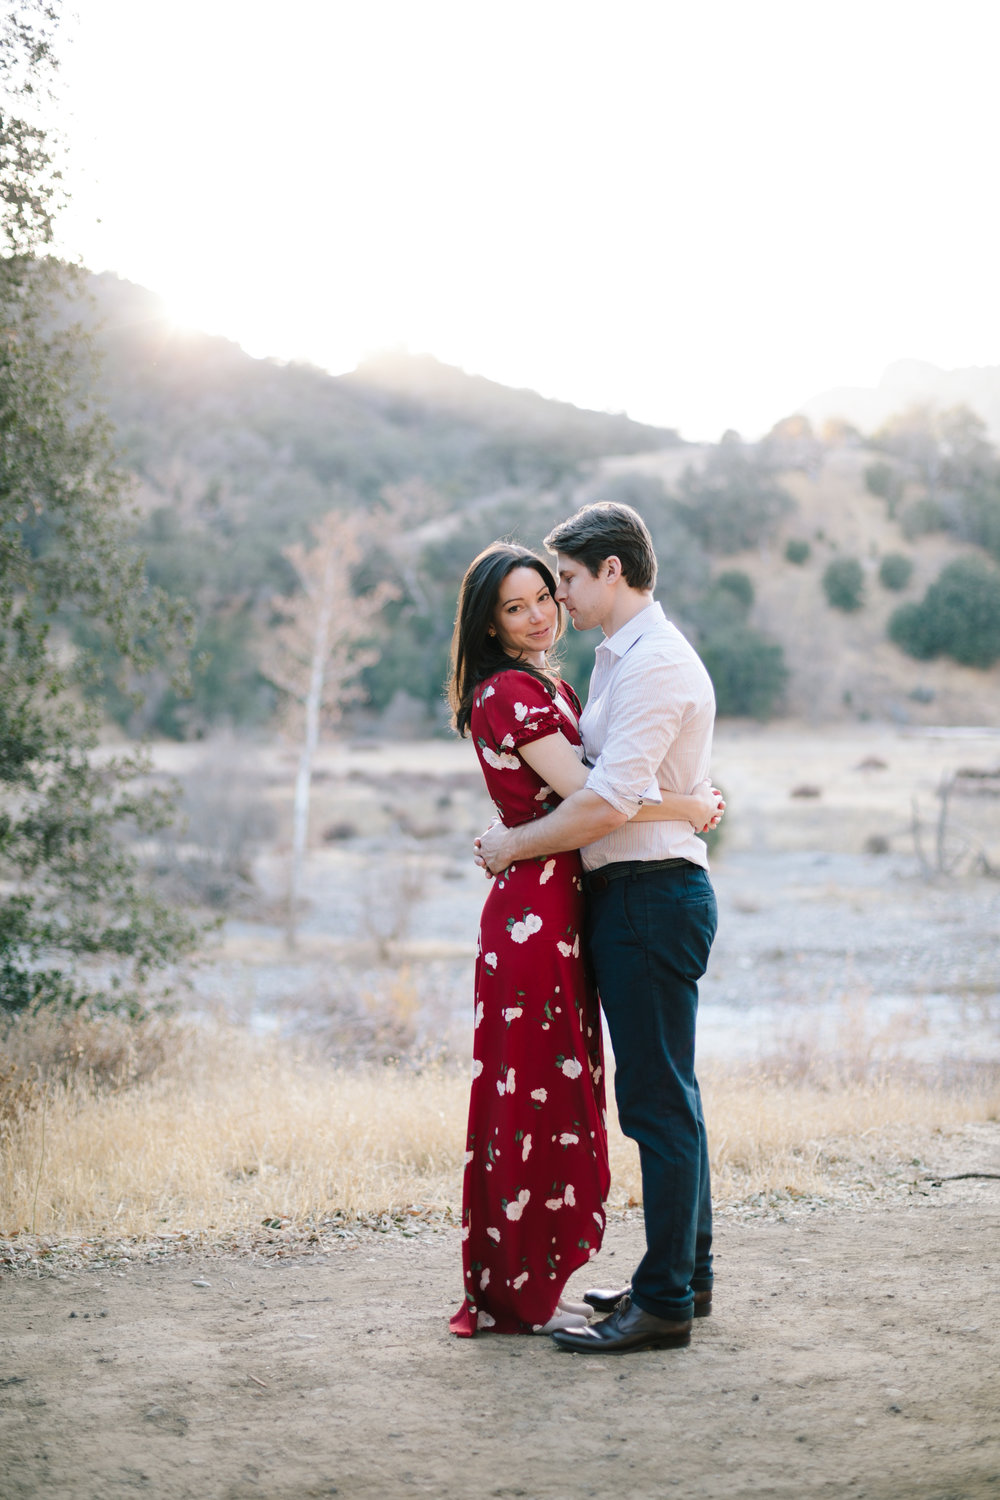 los angeles engagement photography-105.jpg